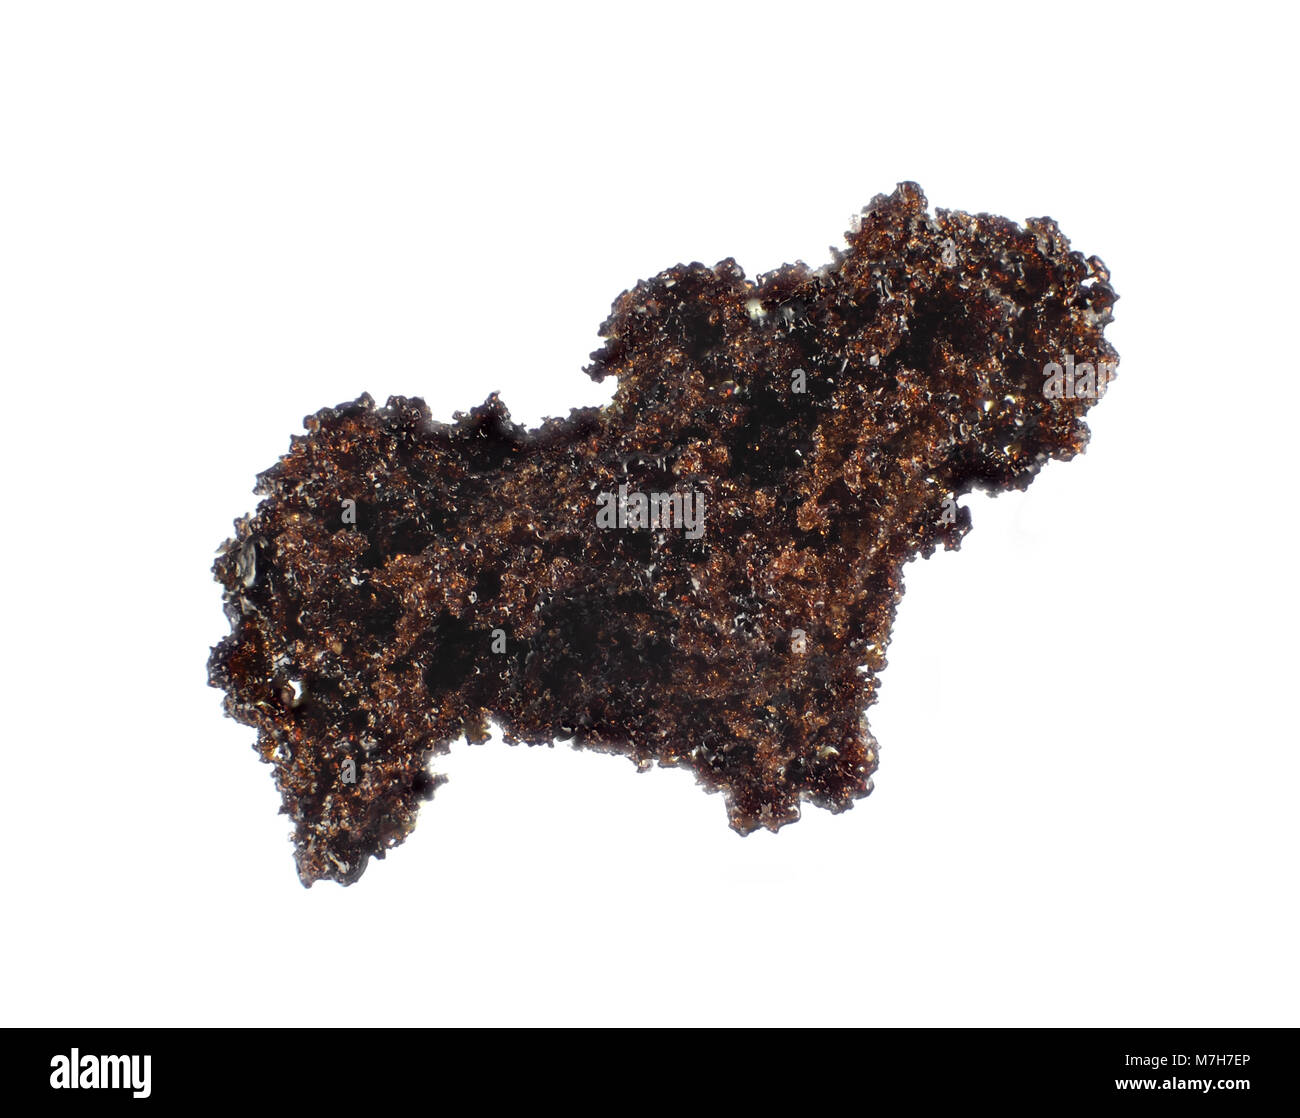 Instant coffee isolated on white background, light micrograph - Stock Image